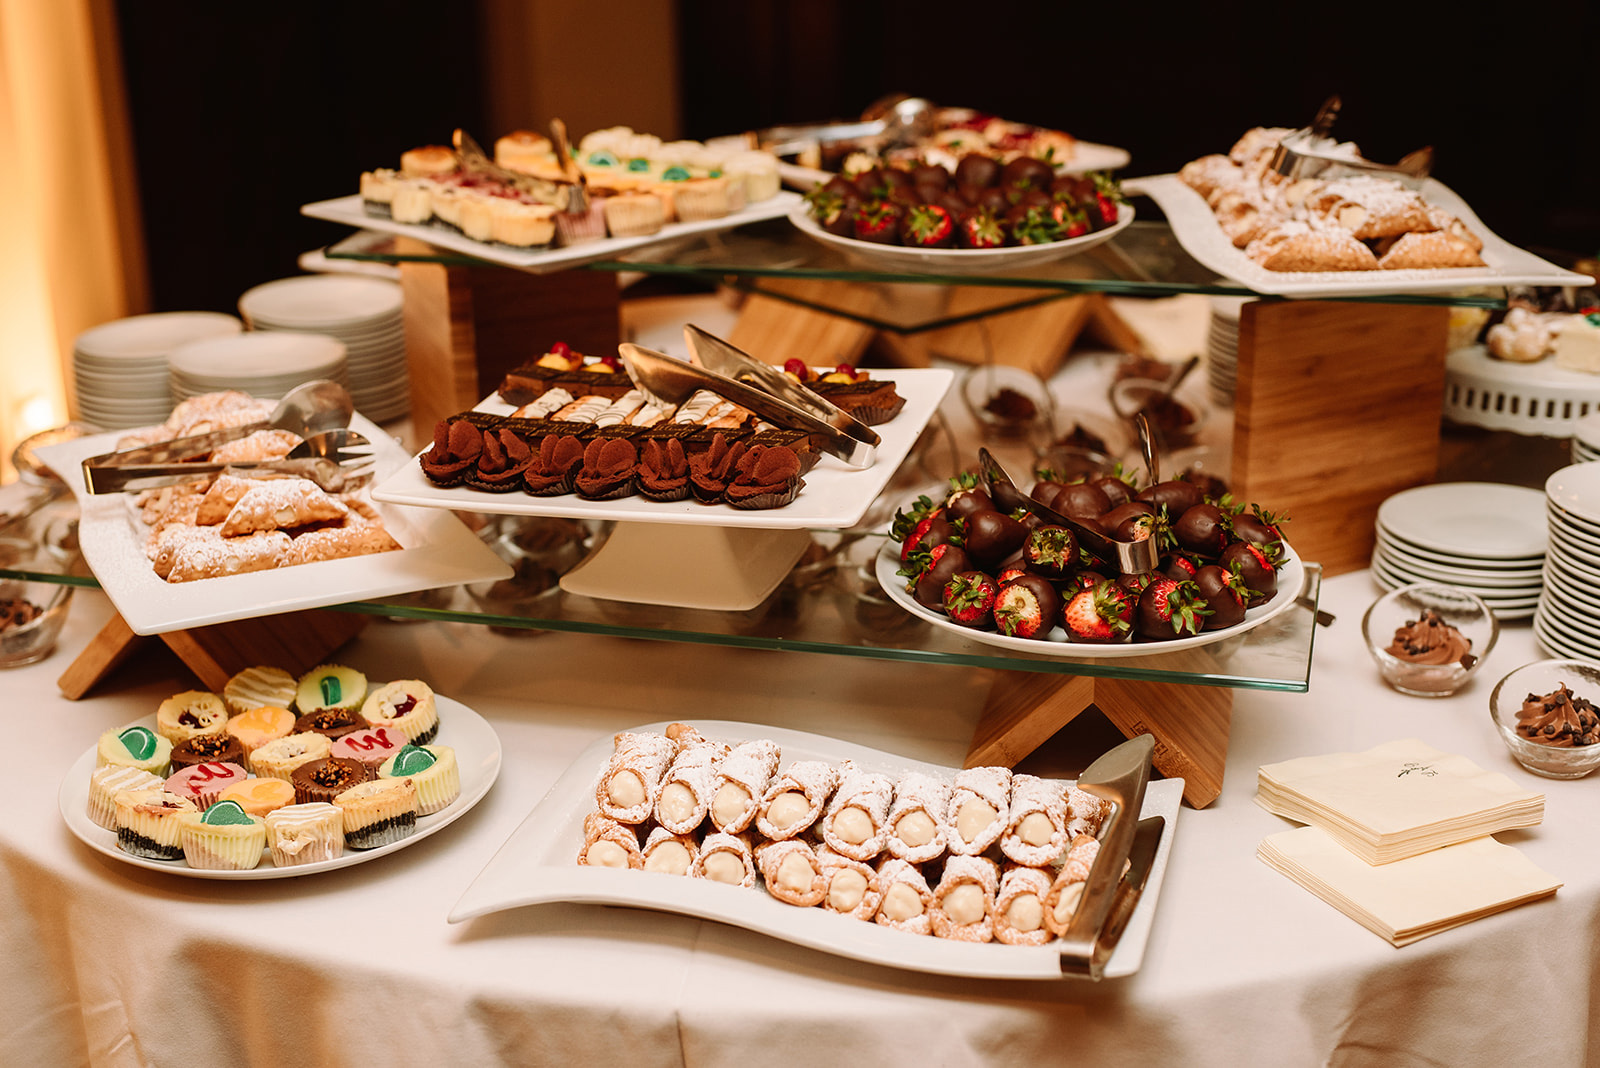 Winter dessert table